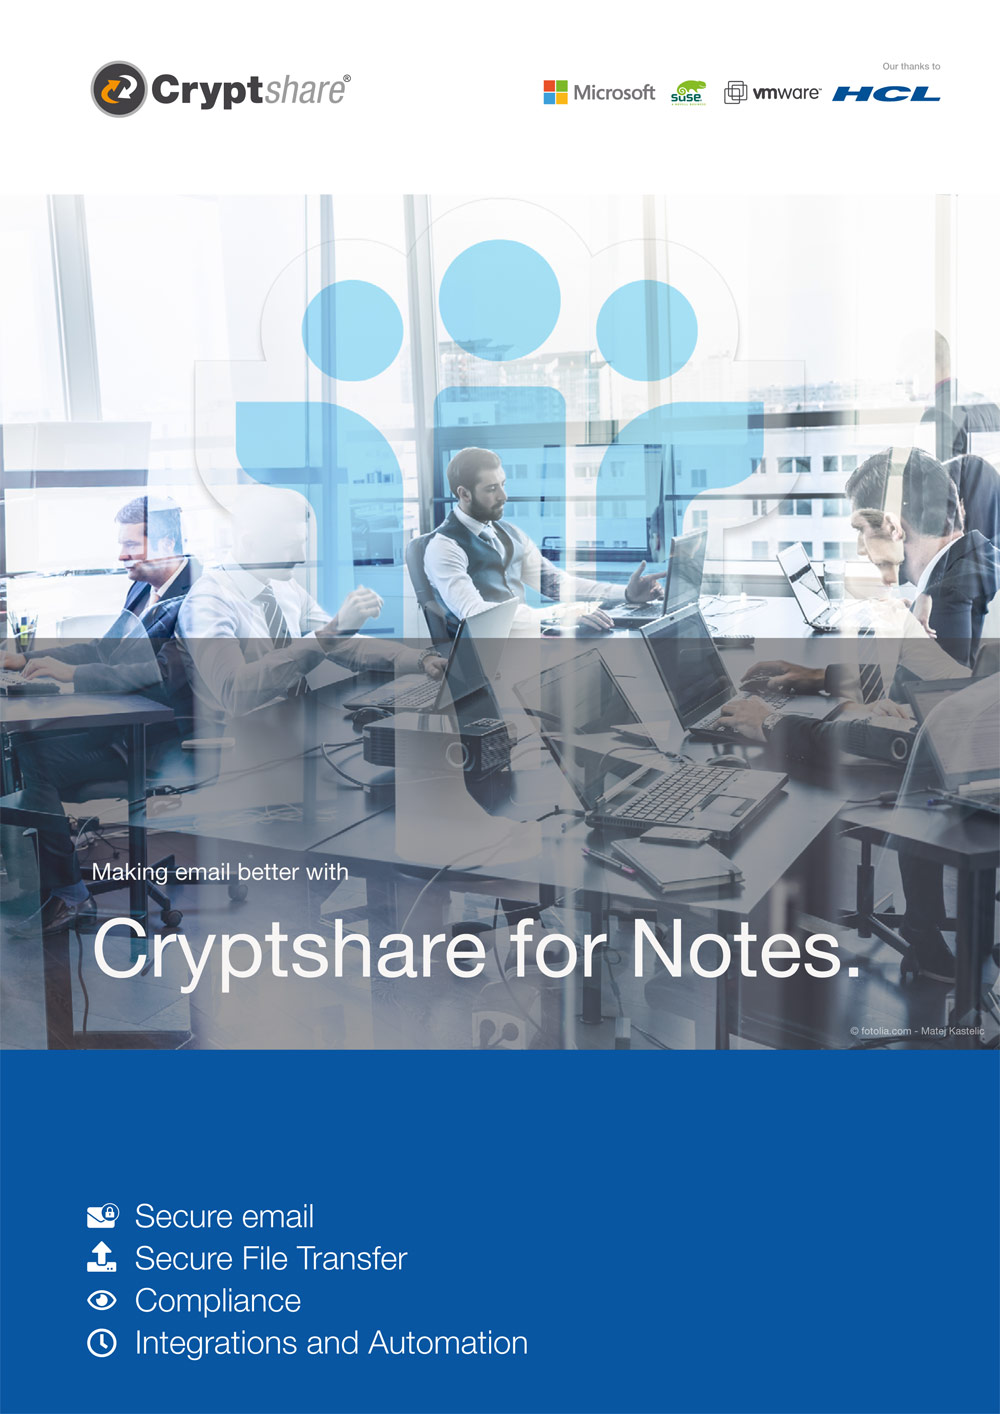 Cryptshare-Cryptshare_for_Notes-05232019-EU-EN-web